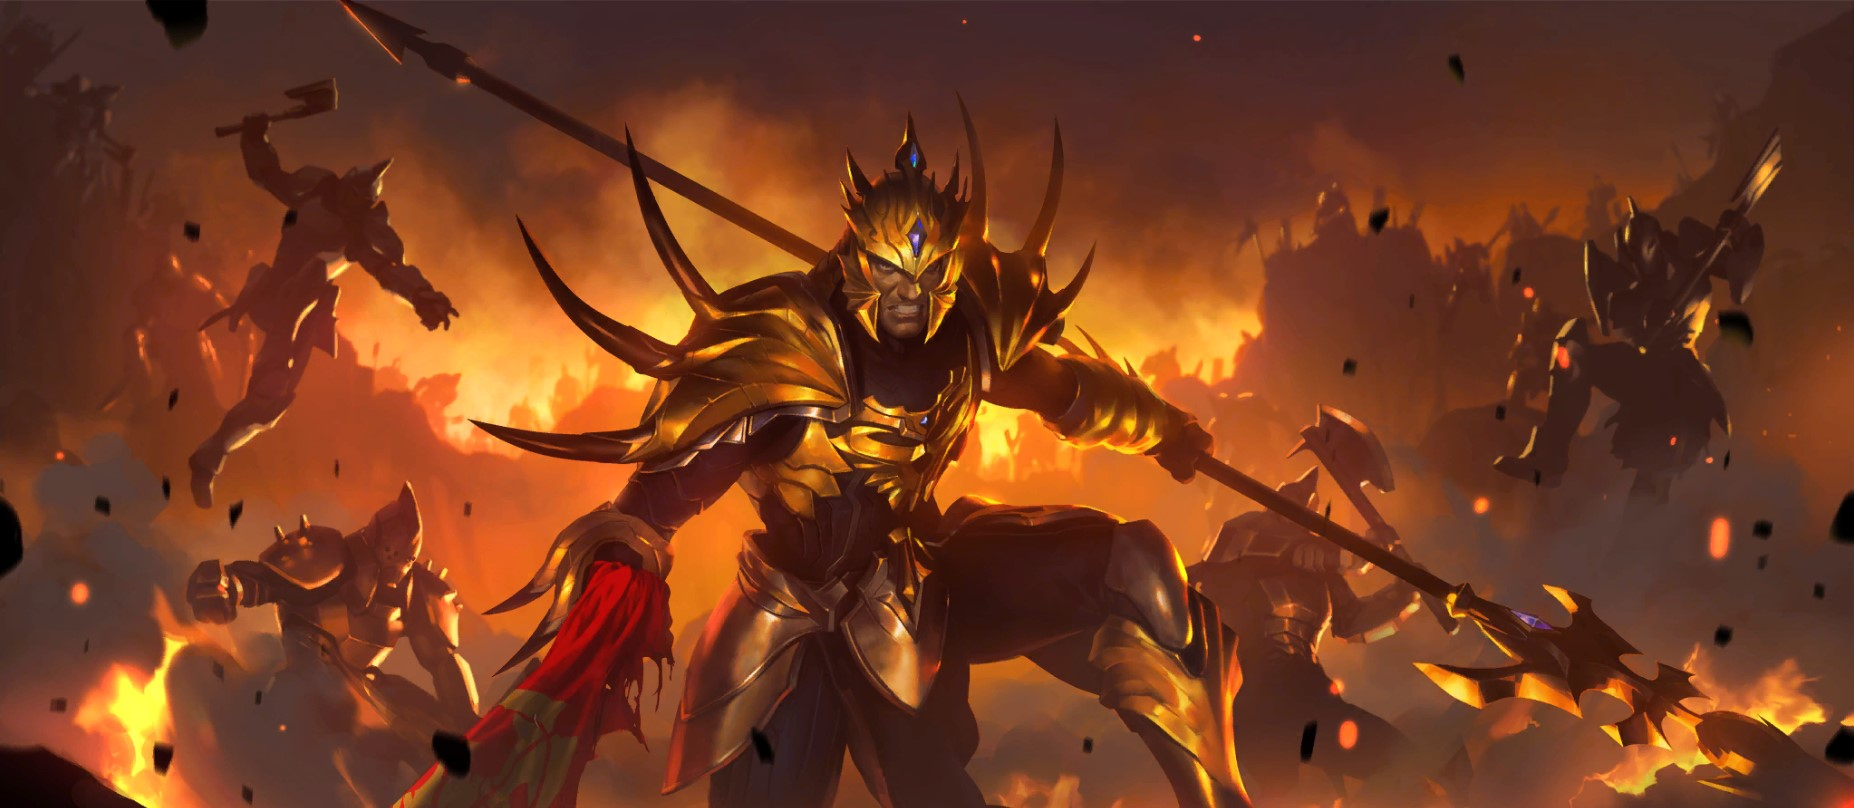 Empires of the Ascended LoR Card Impressions: Jarvan IV (King Jarvan III, Cataclysm, and More)